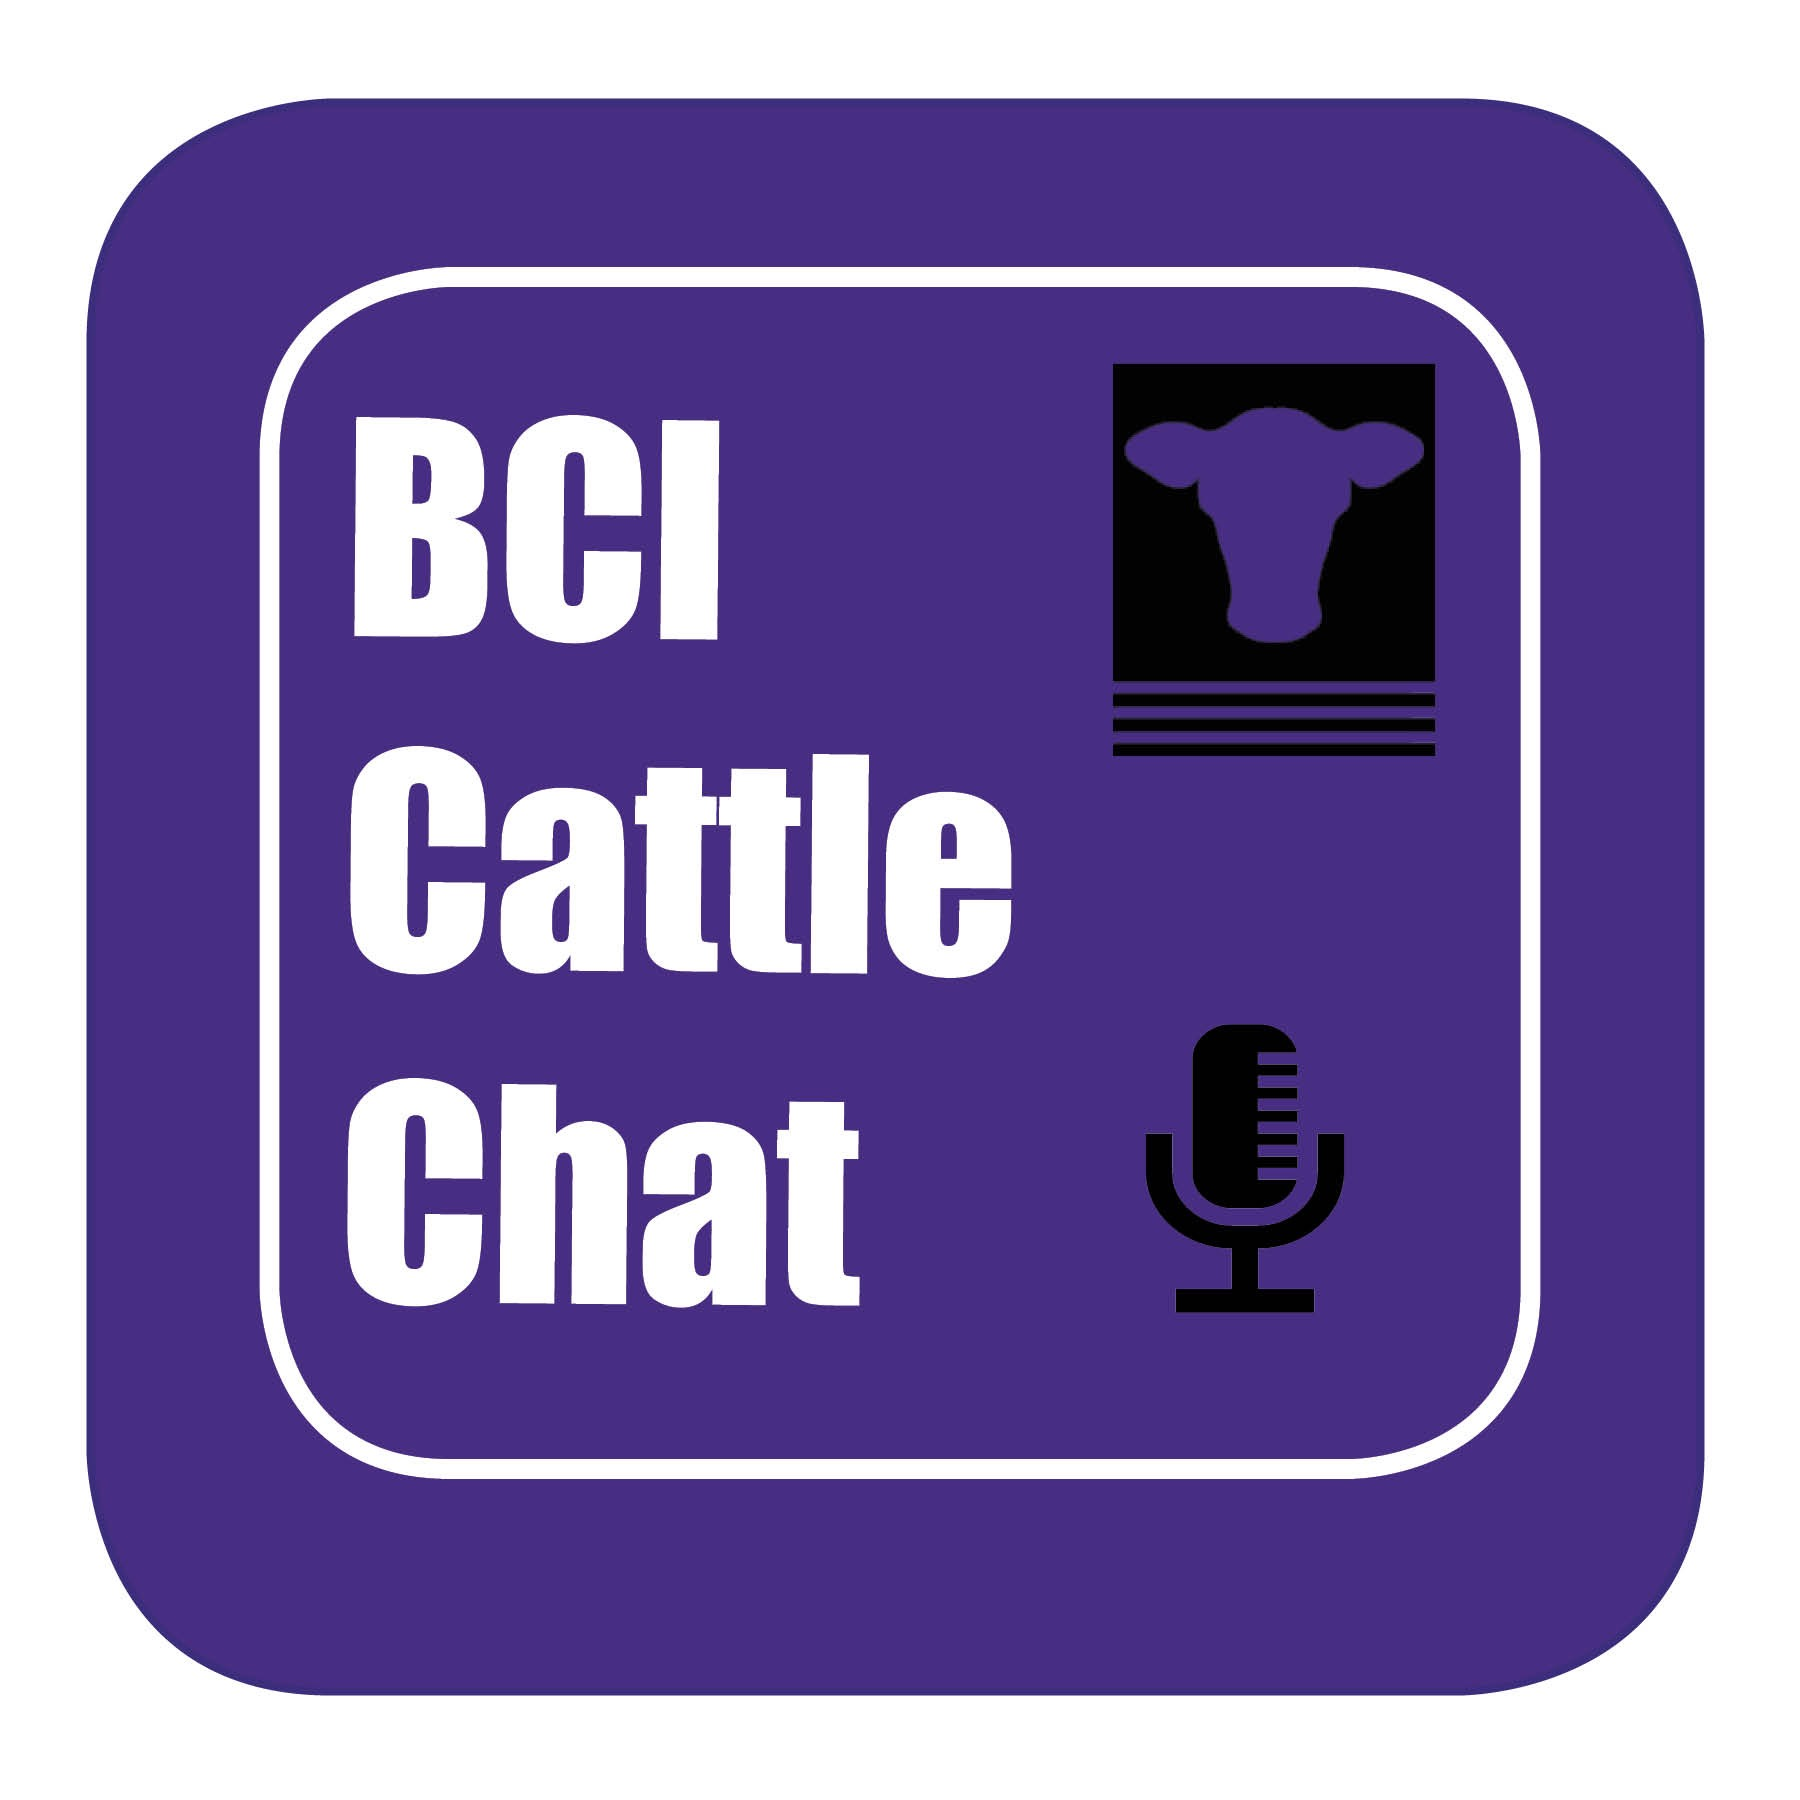 BCI Cattle Chat - Episode 5